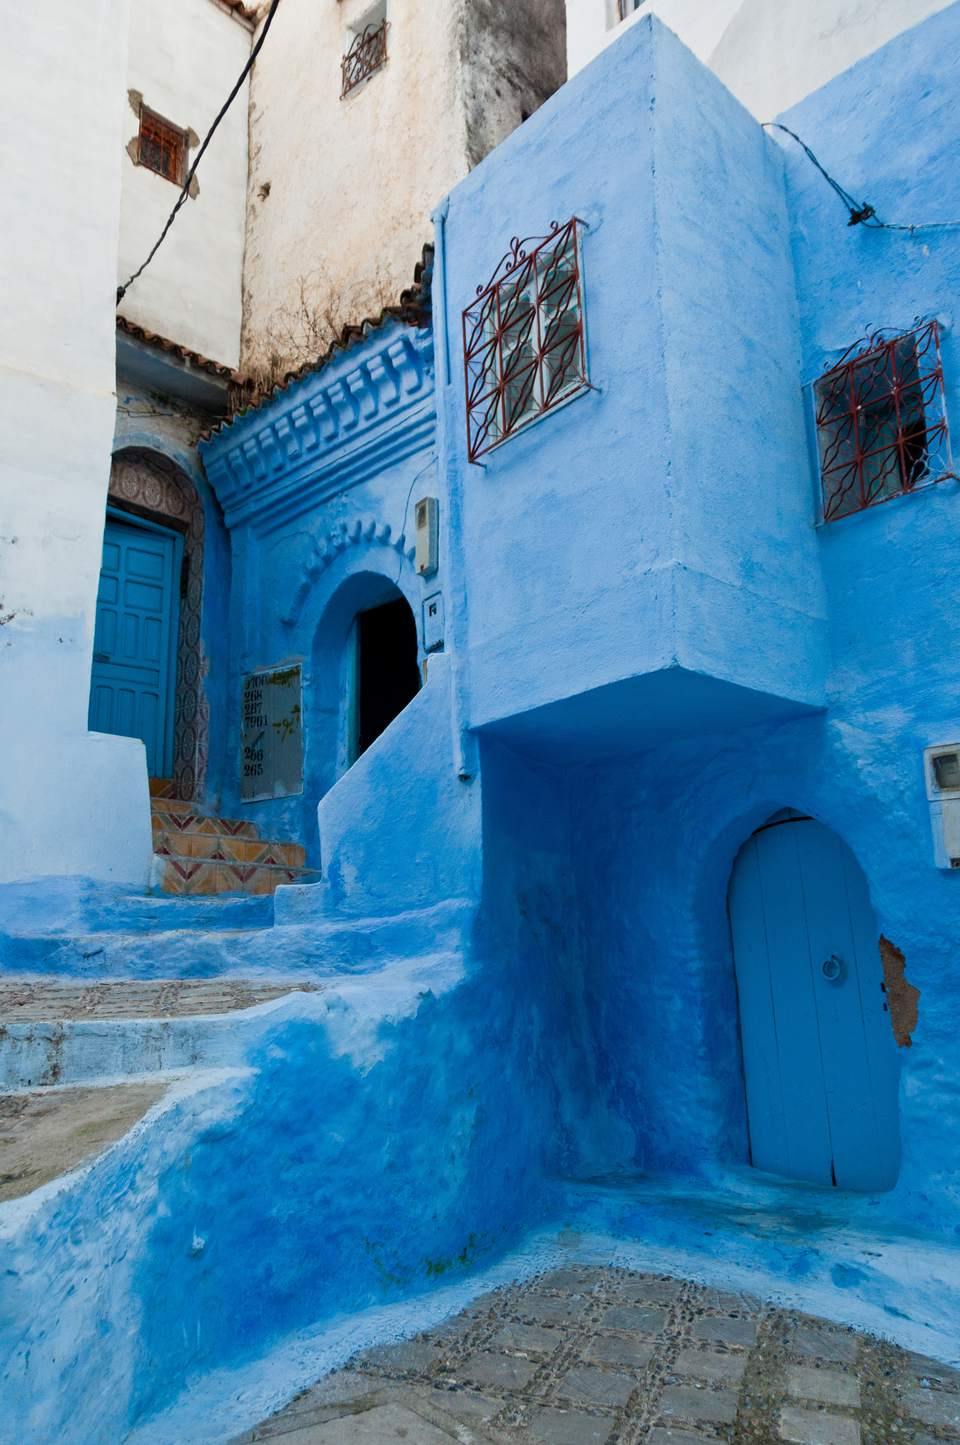 The blue town of Chefchaouen is not too far from Tangiers